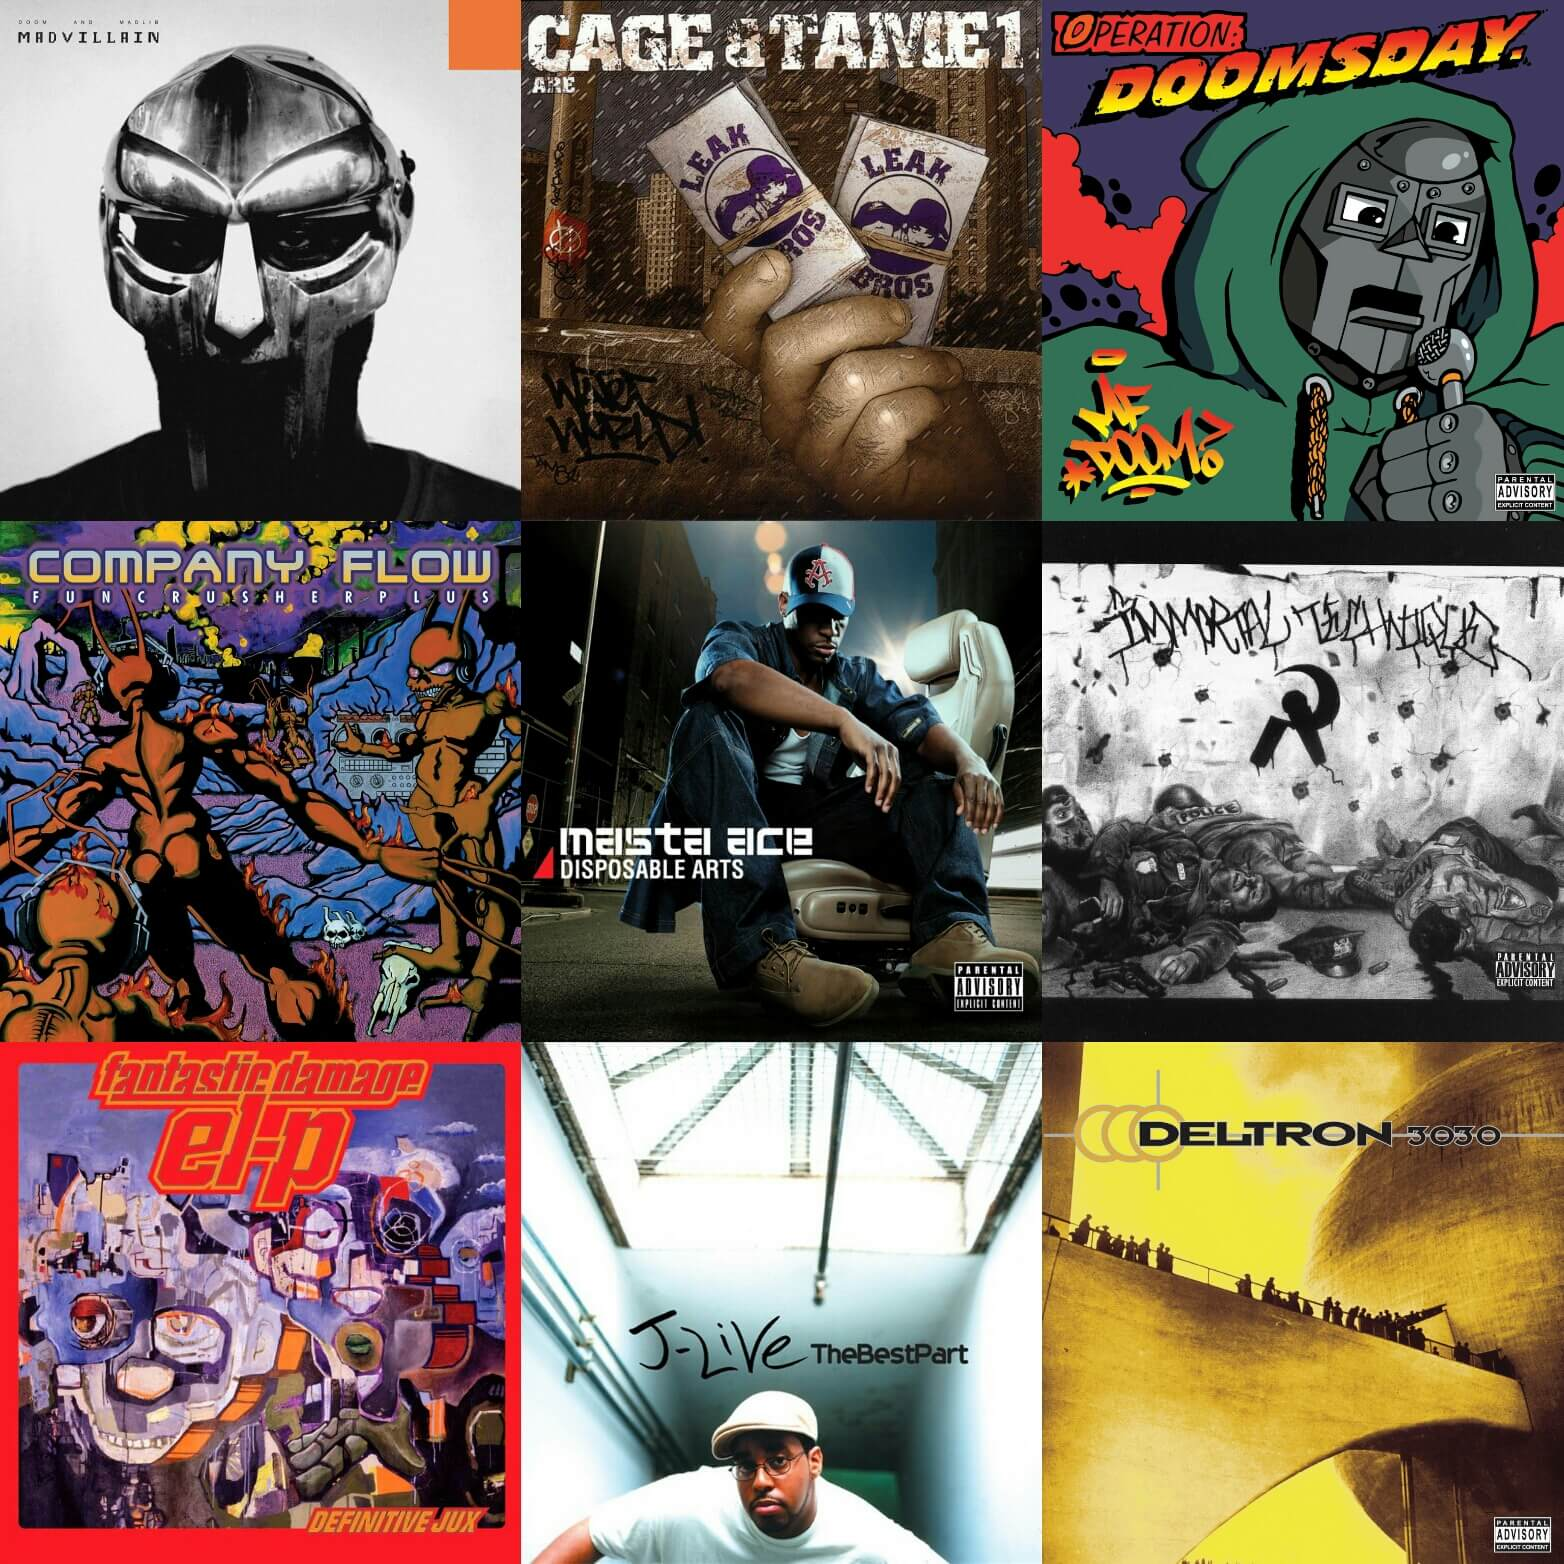 25 Hip Hop Song: Top 25 Underground Hip Hop Albums... Of All Time